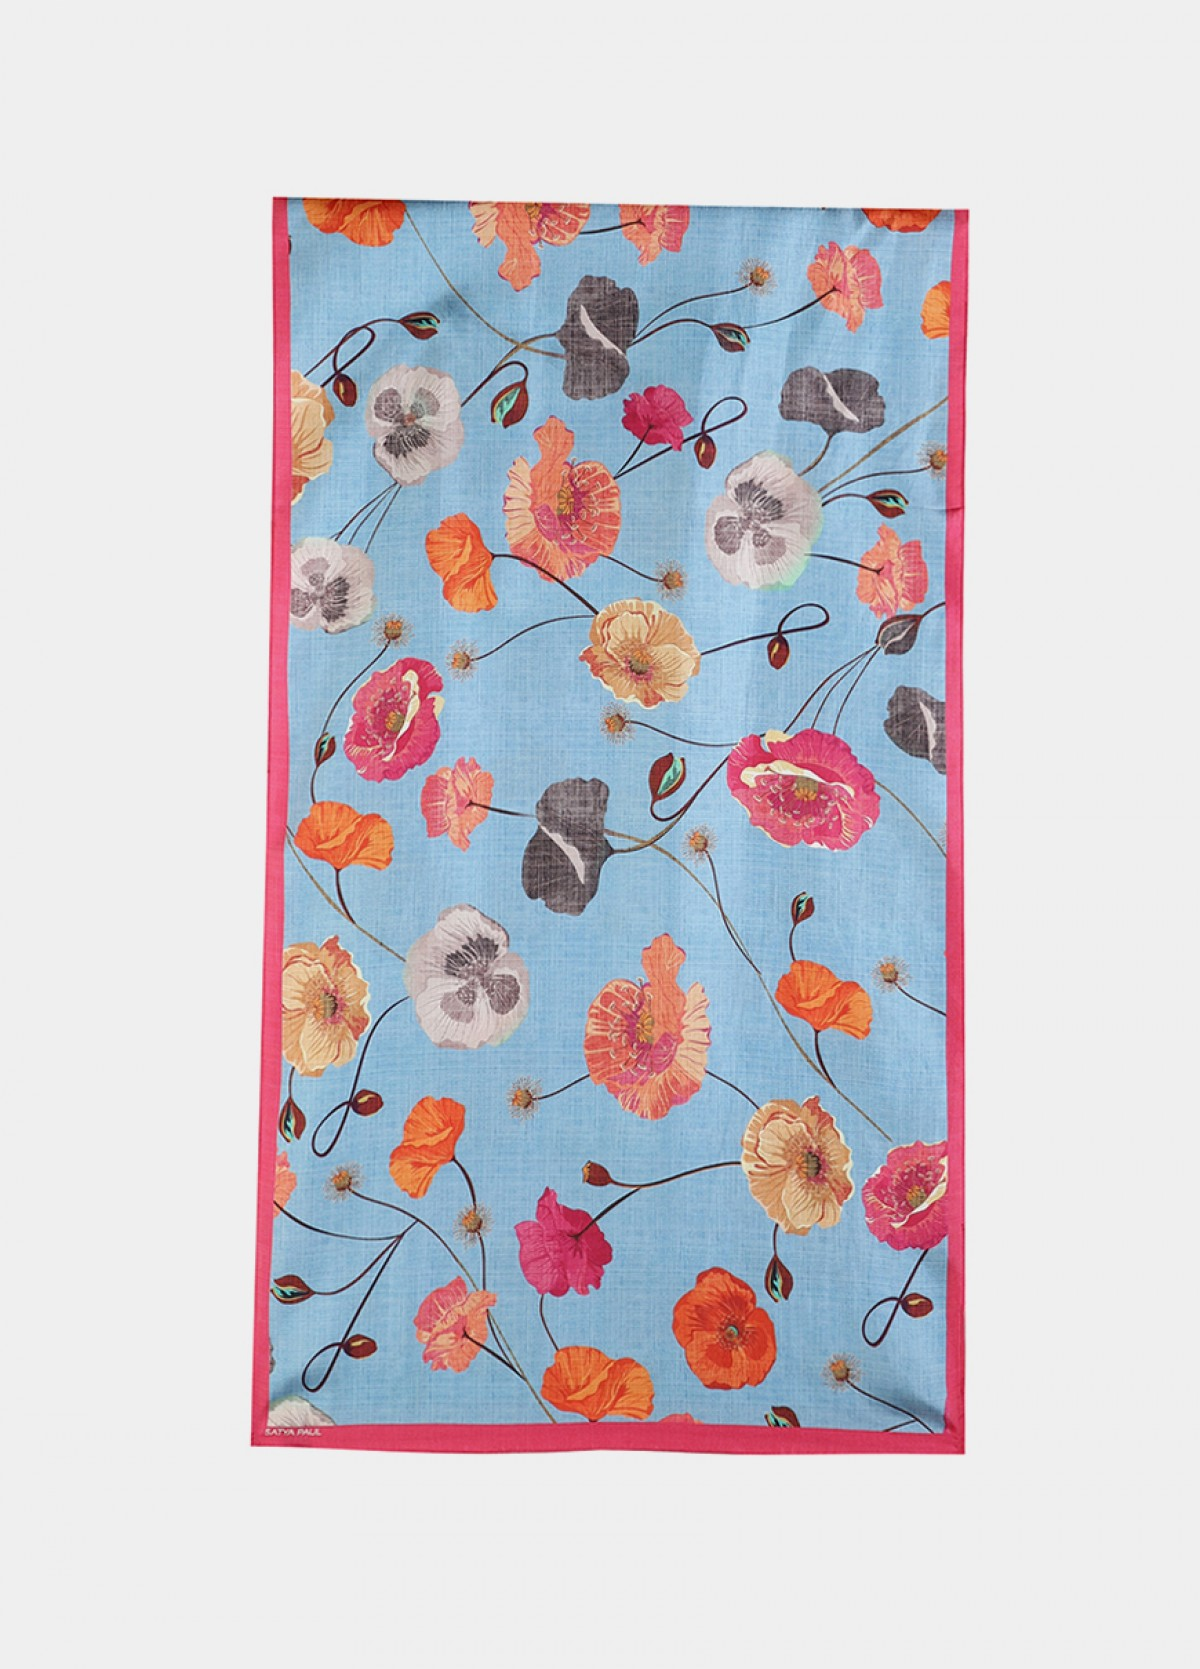 The Floral Stole